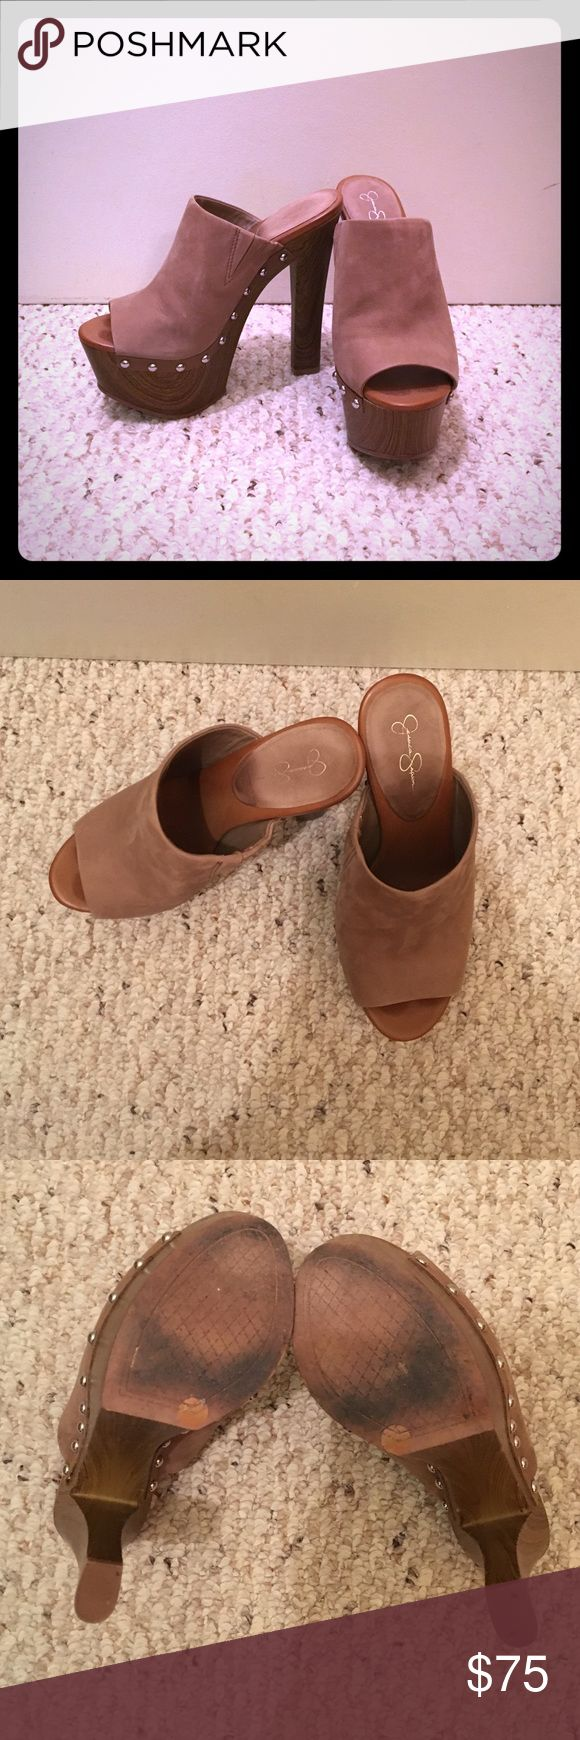 Jessica Simpson Platform Mules Worn once (threw out the box and tags), but in very good condition. Jessica Simpson platform mules (5 inch heel) in a good neutral colour with stud details on sides. Jessica Simpson Shoes Platforms